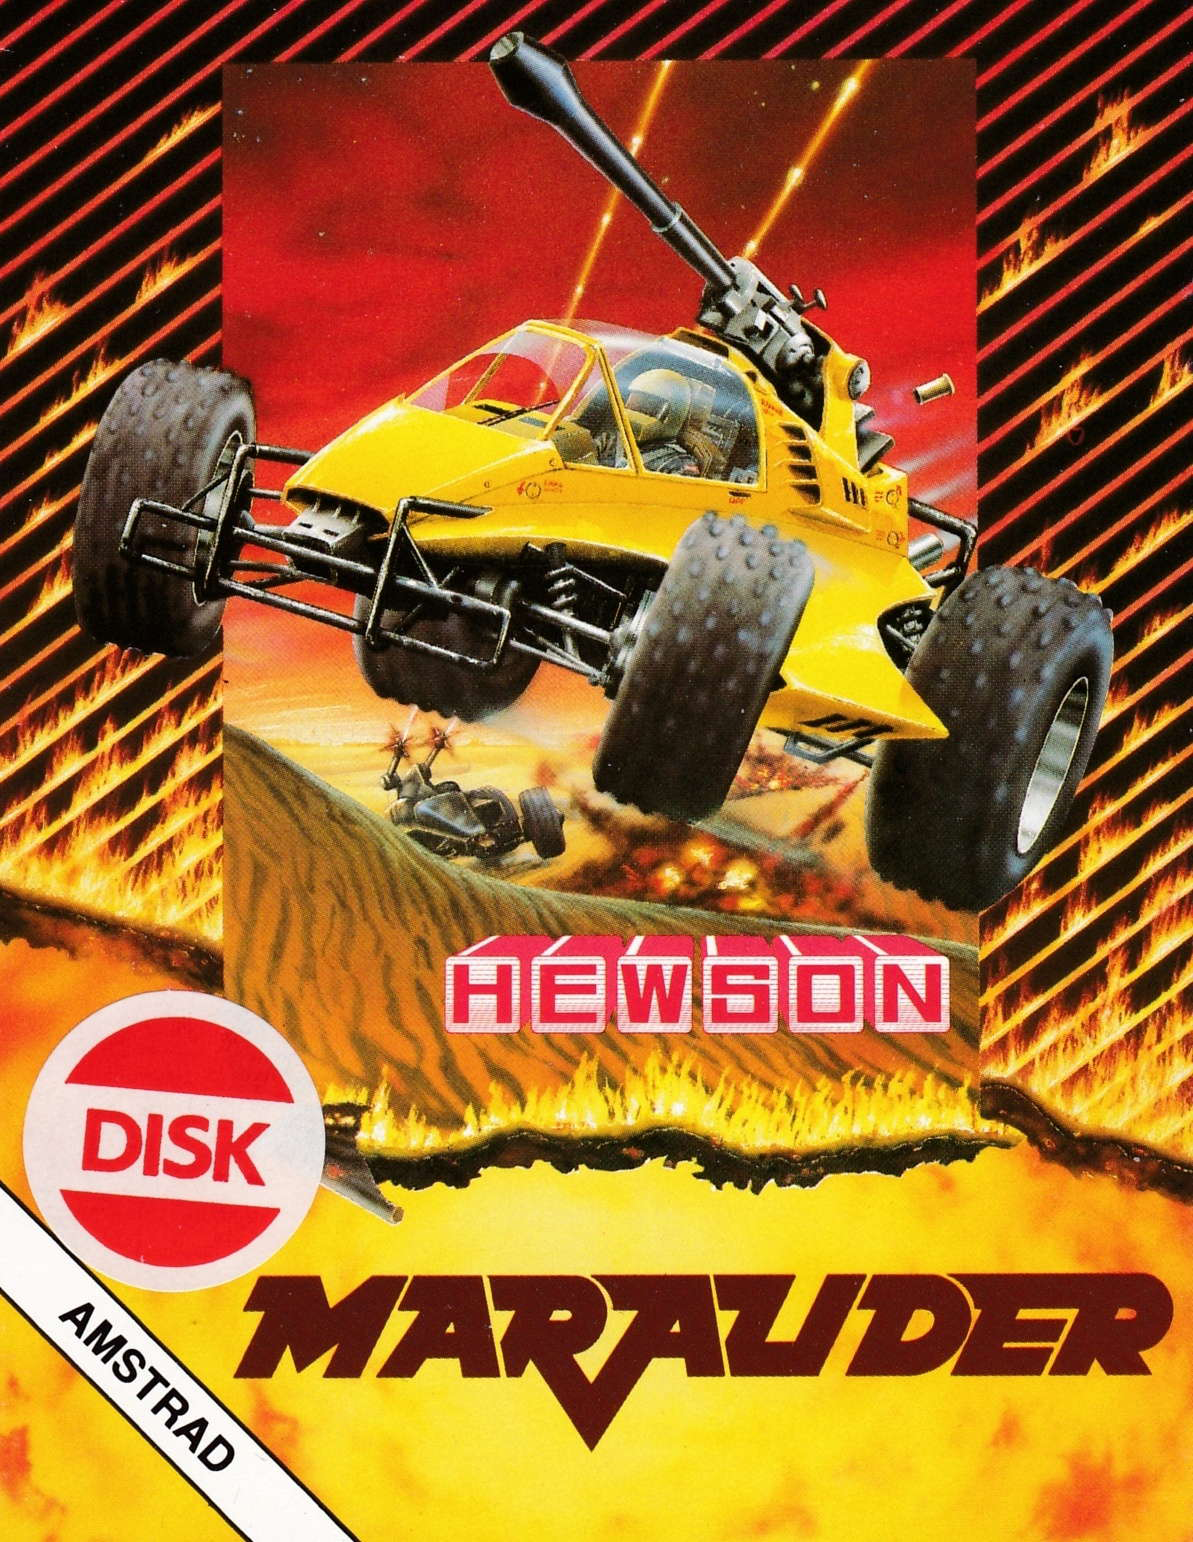 cover of the Amstrad CPC game Marauder  by GameBase CPC